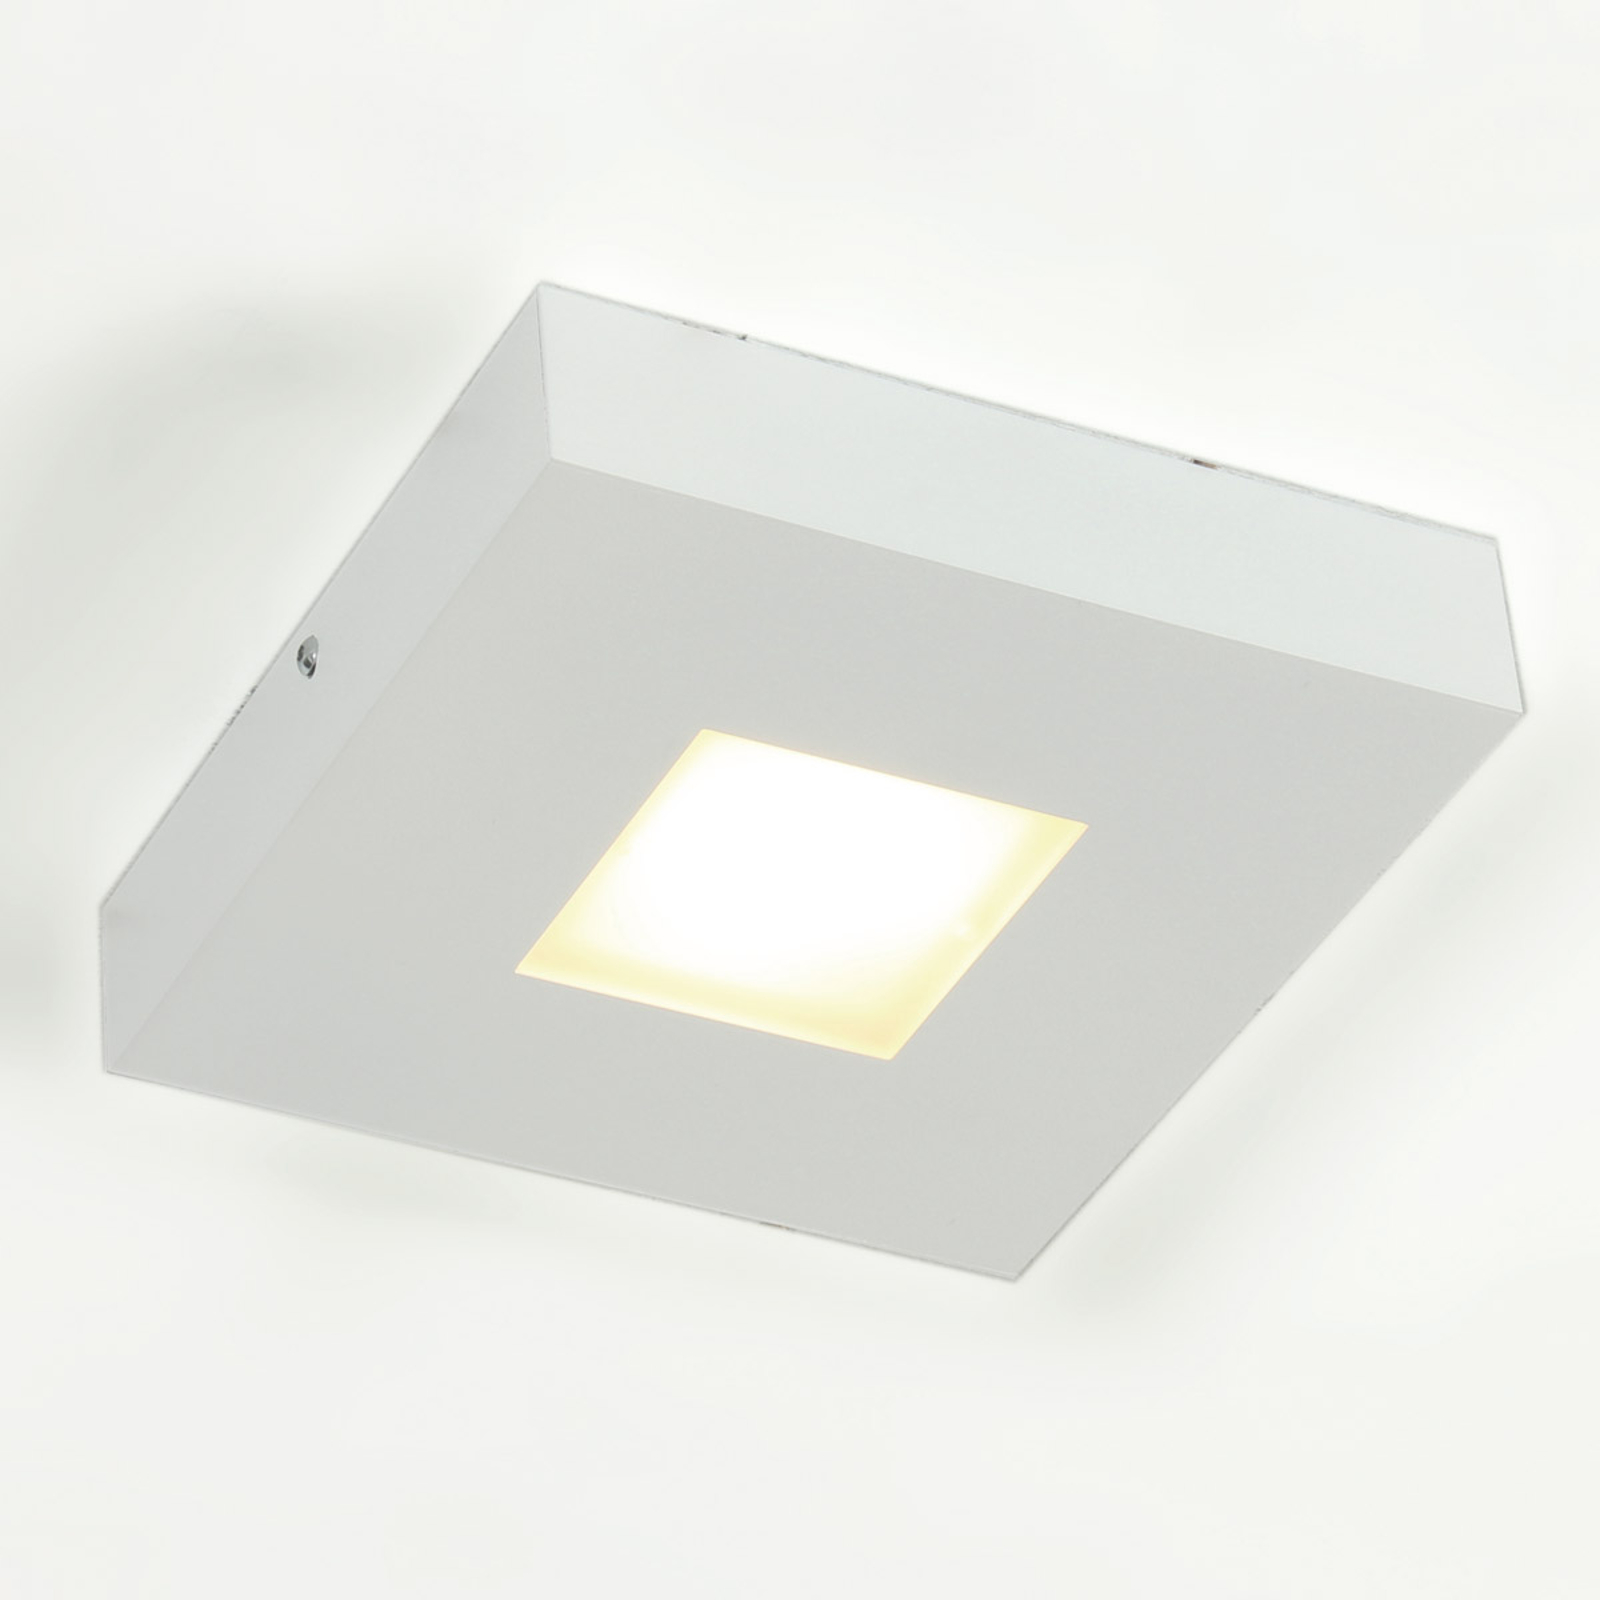 High quality LED ceiling lamp Cubus, white_1556134_1